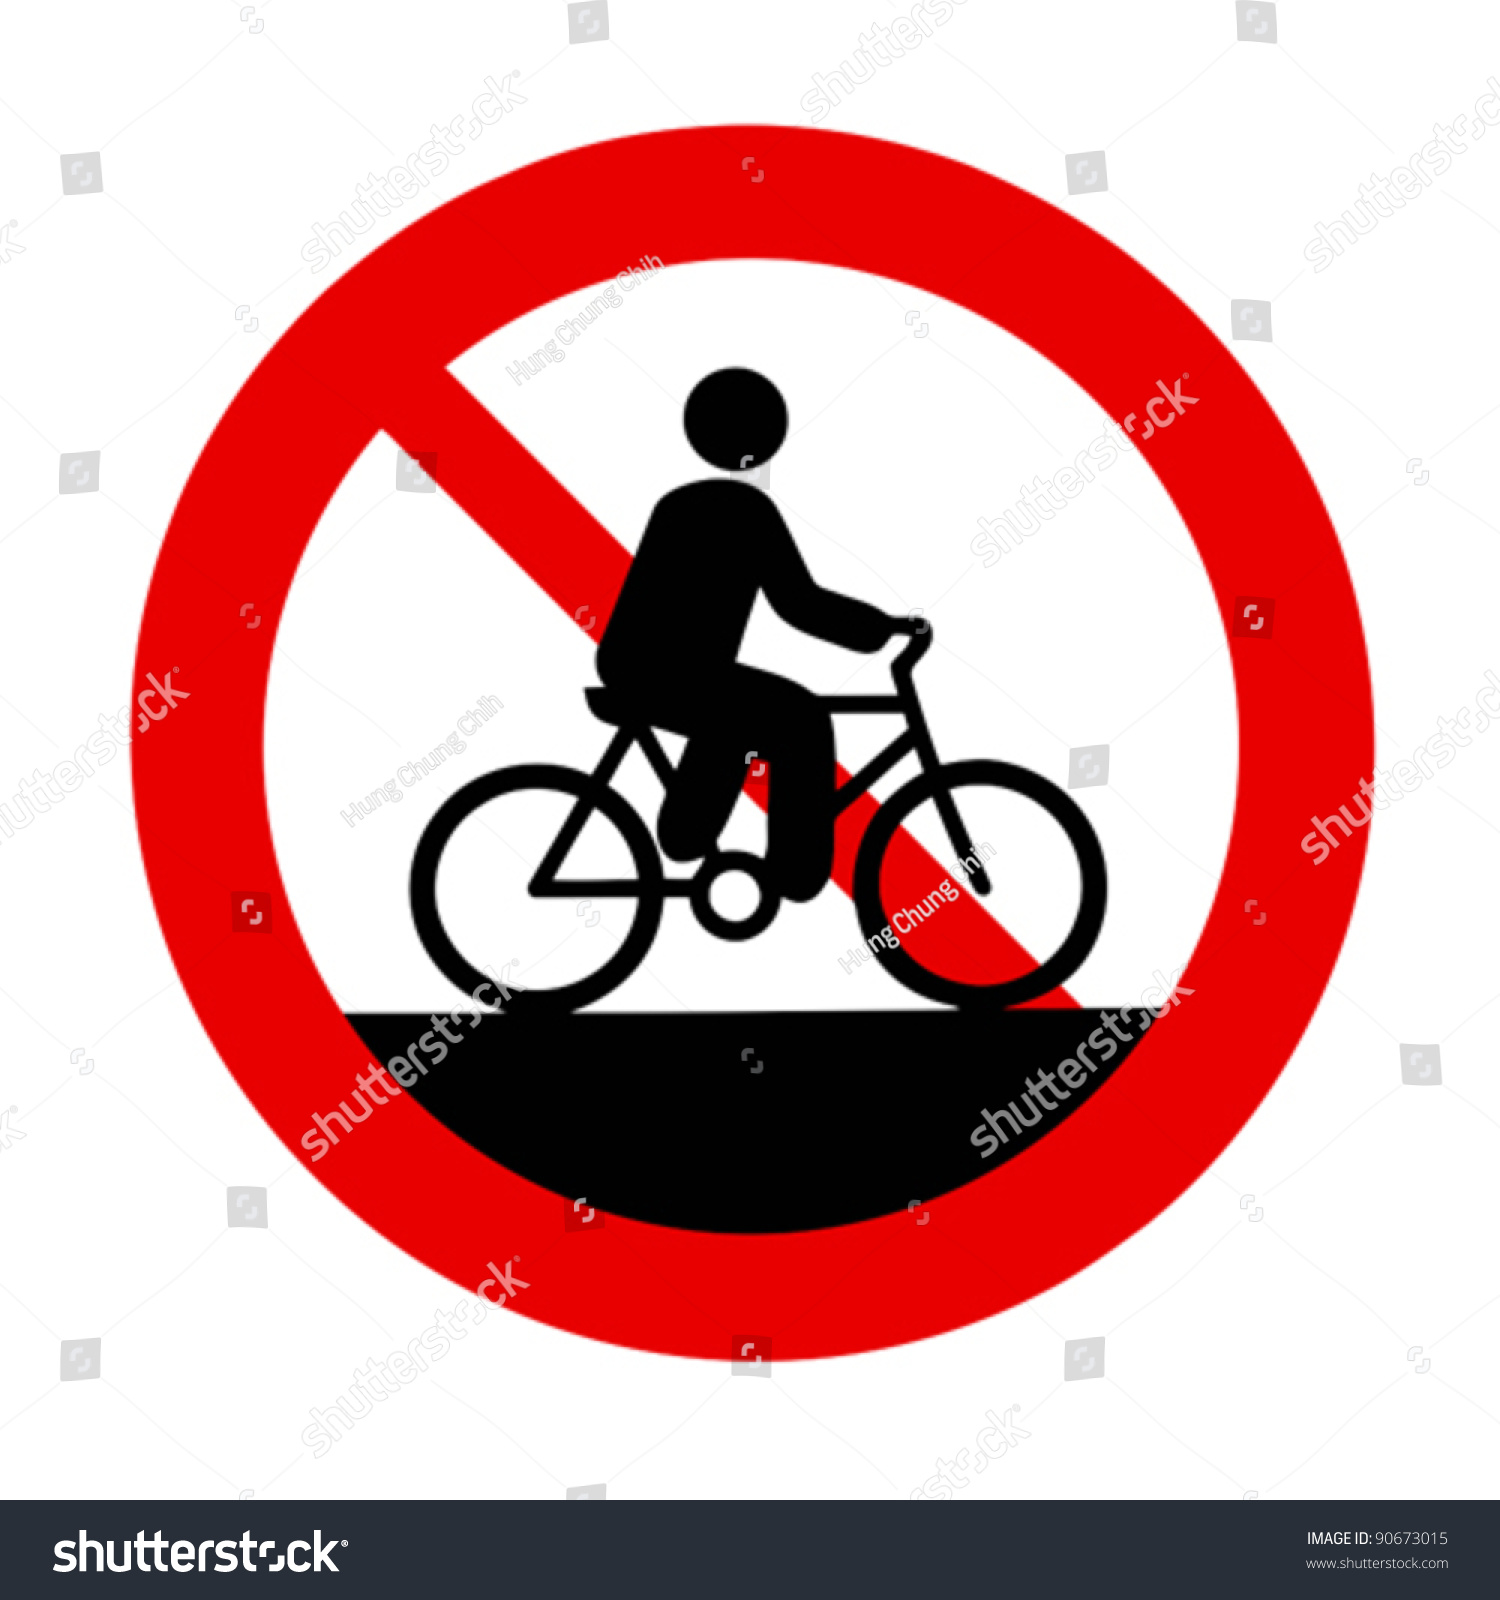 No Bicycles Allowed Sign Stock Vector (2018) 90673015 - Shutterstock